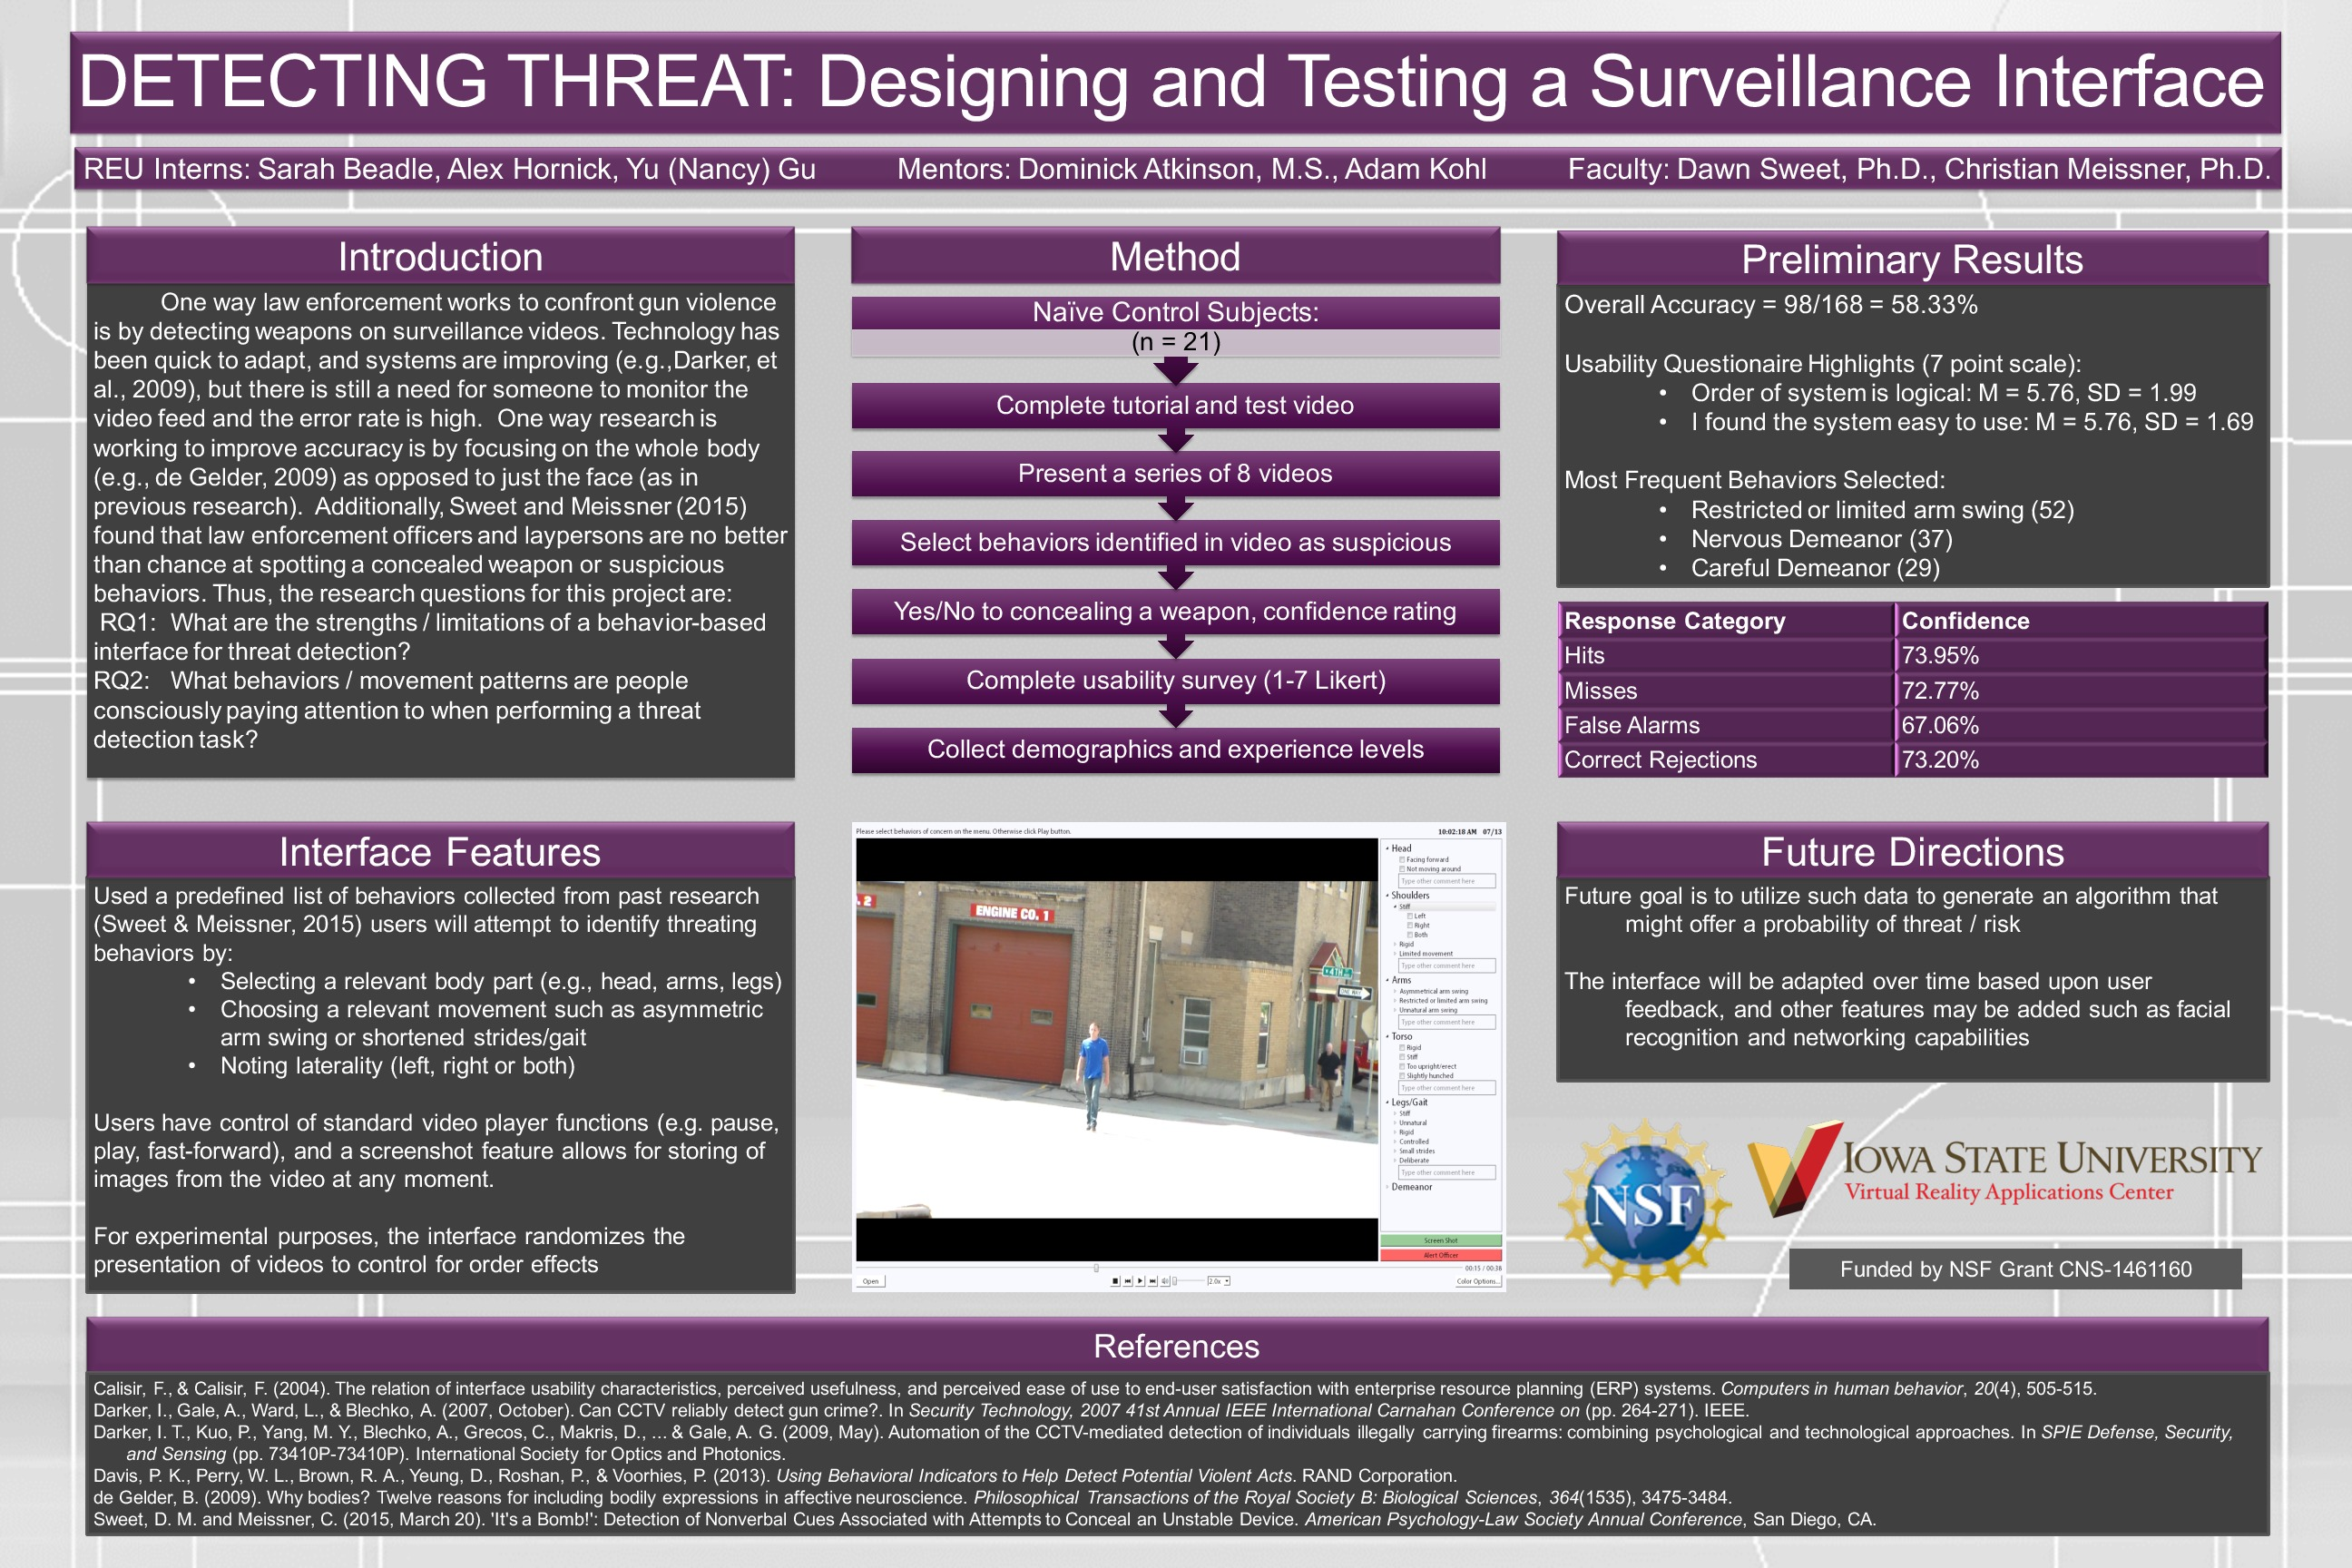 Detecting Threat poster